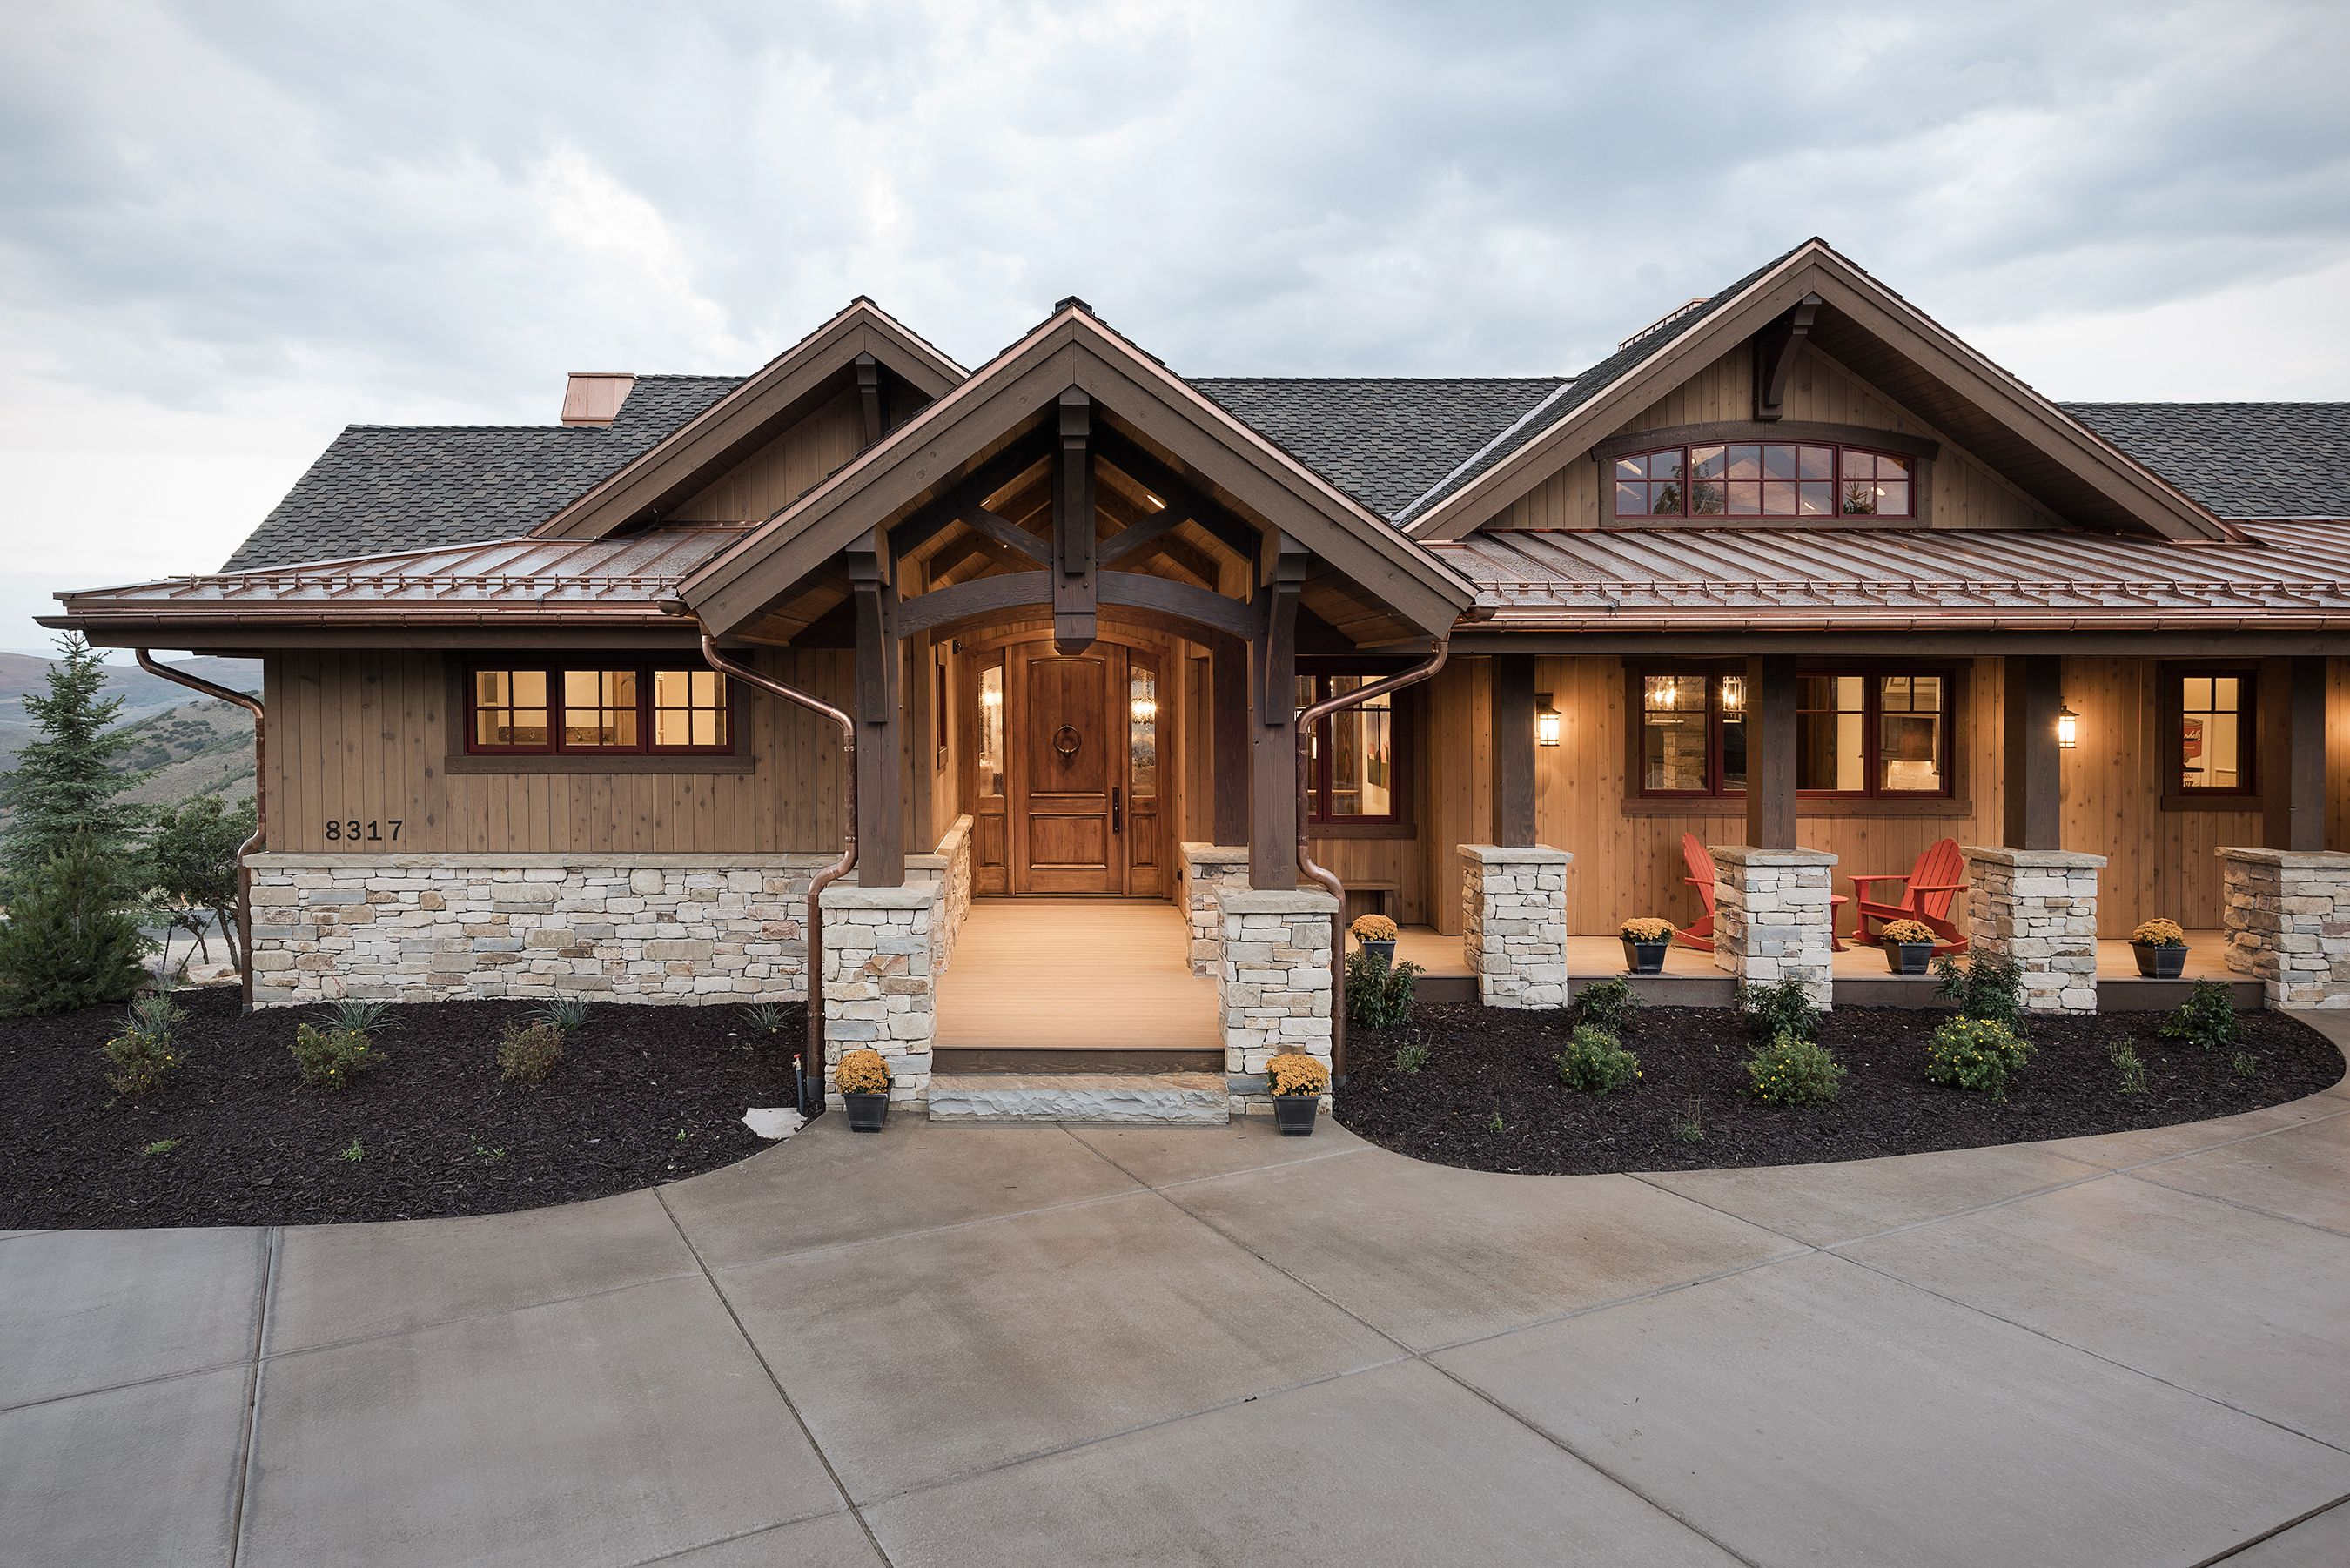 Landscaping For The 2016 Park City Area Showcase Of Homes In Promontory Timberridge Utah